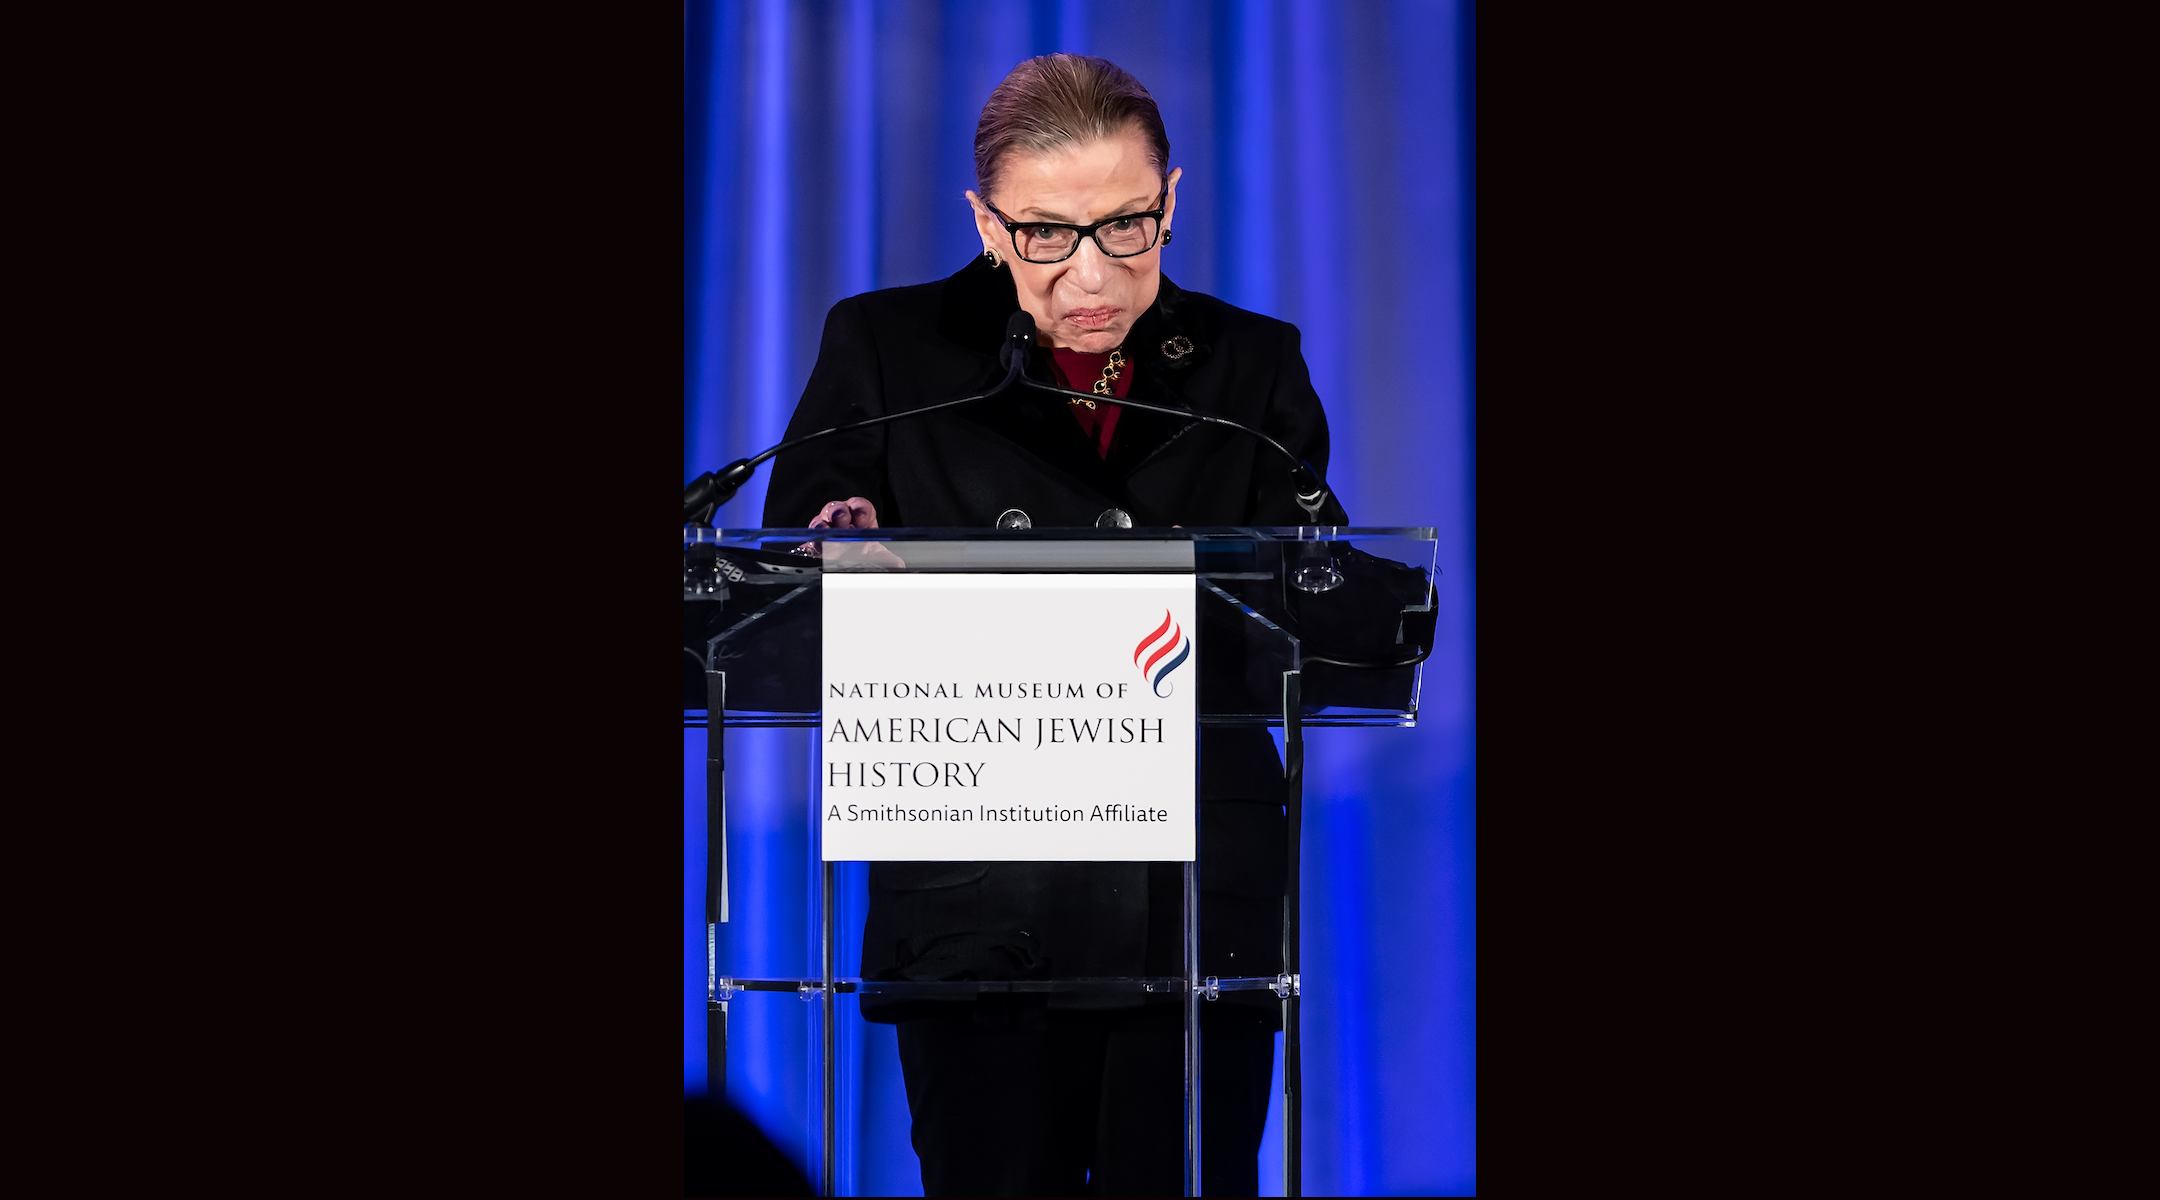 Supreme Court Justice Ruth Bader Ginsburg speaks at the National Museum Of American Jewish History on December 19, 2019 in Philadelphia. (Gilbert Carrasquillo/Getty Images)